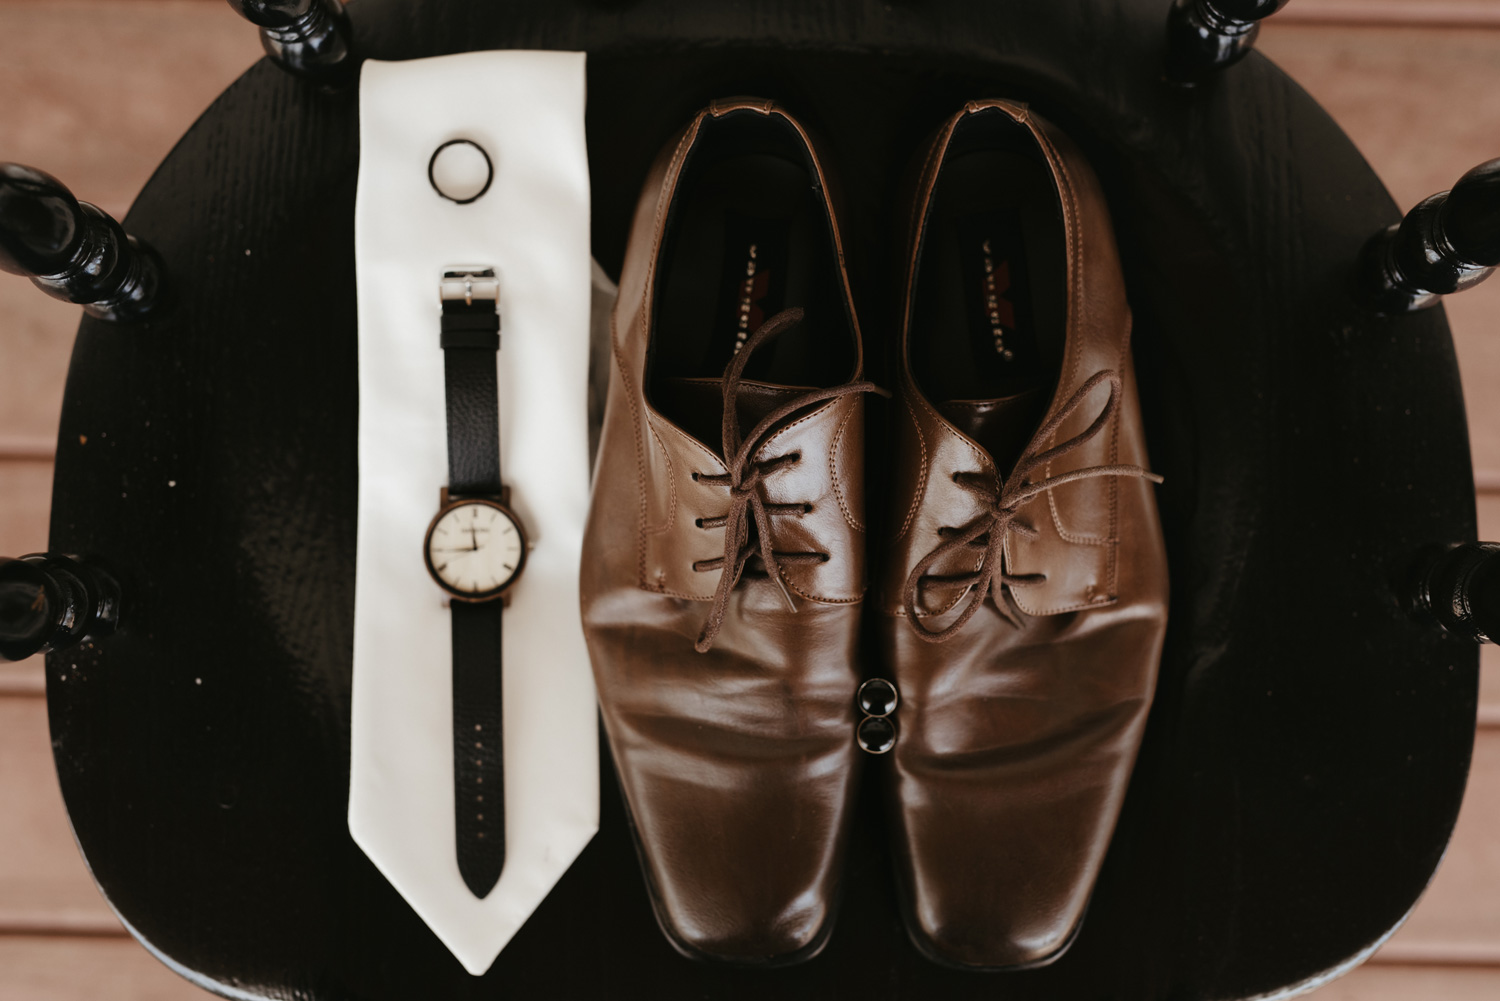 Groom's wedding details including shoes, tie, watch, cufflinks and ring